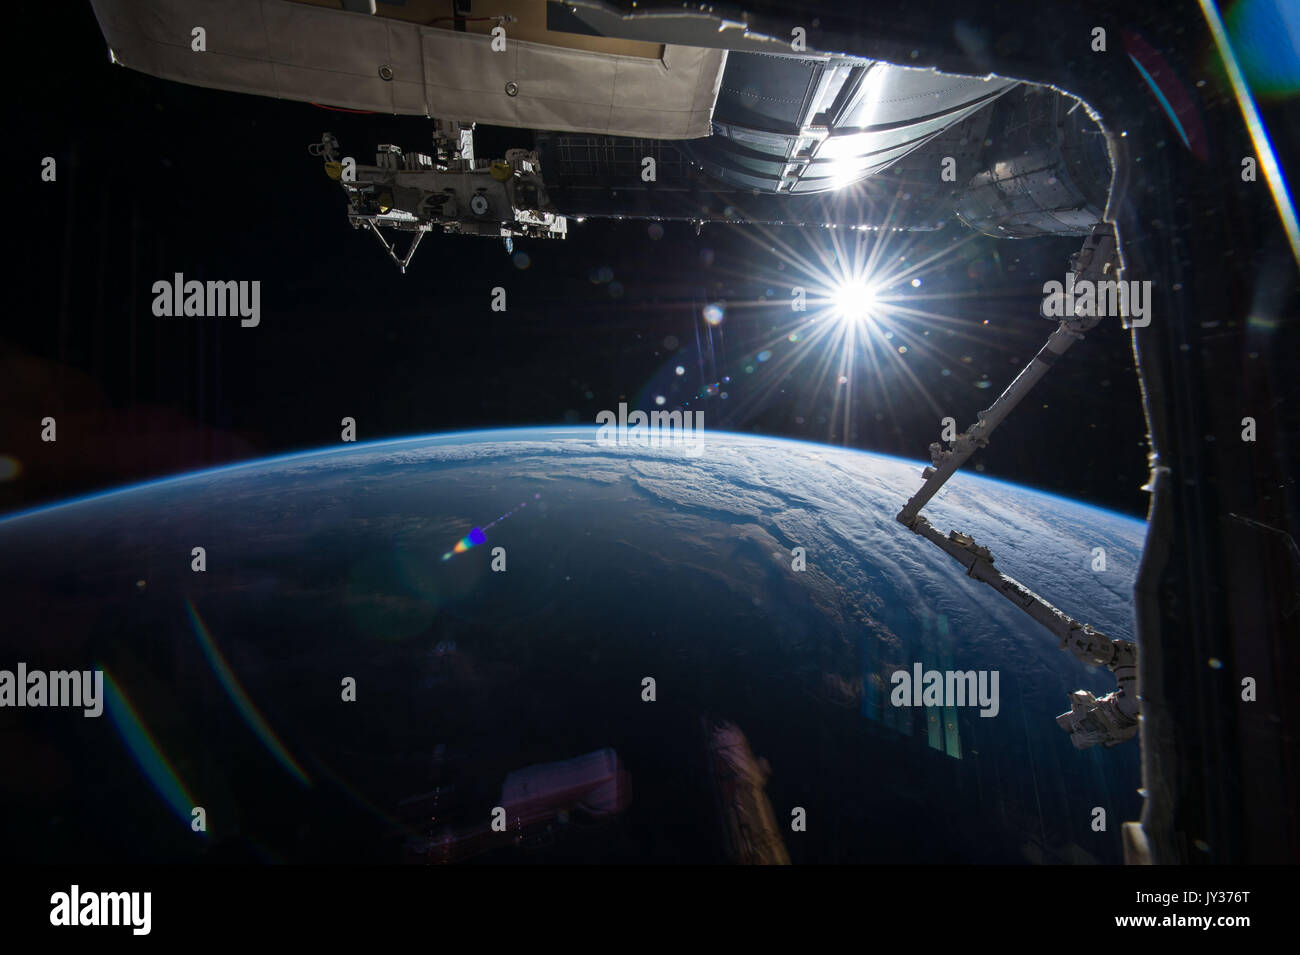 Exploration of planet Earth from outer space. Beauty in nature seen from the ISS. Elements of this image furnished by NASA - Stock Image